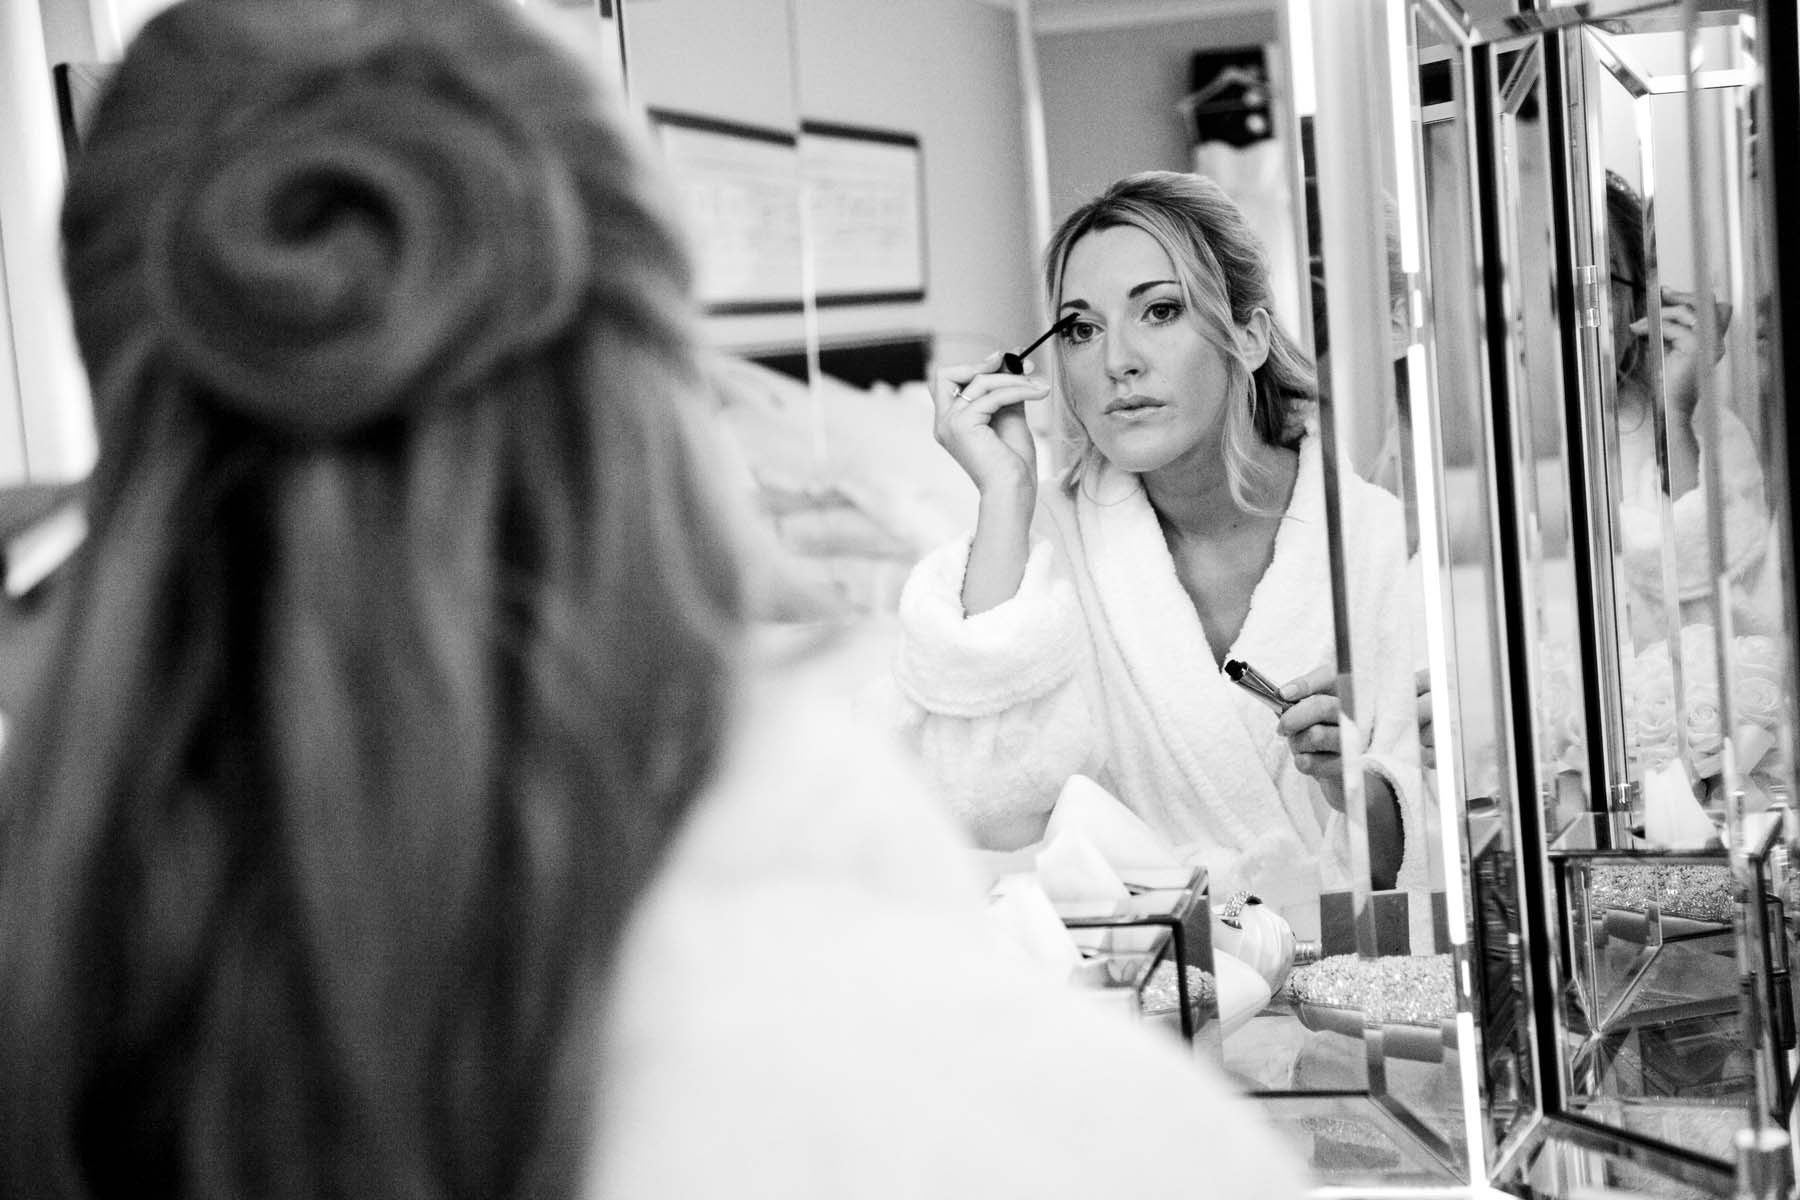 Sussex & Surrey Wedding Photographer - Preparation (3)